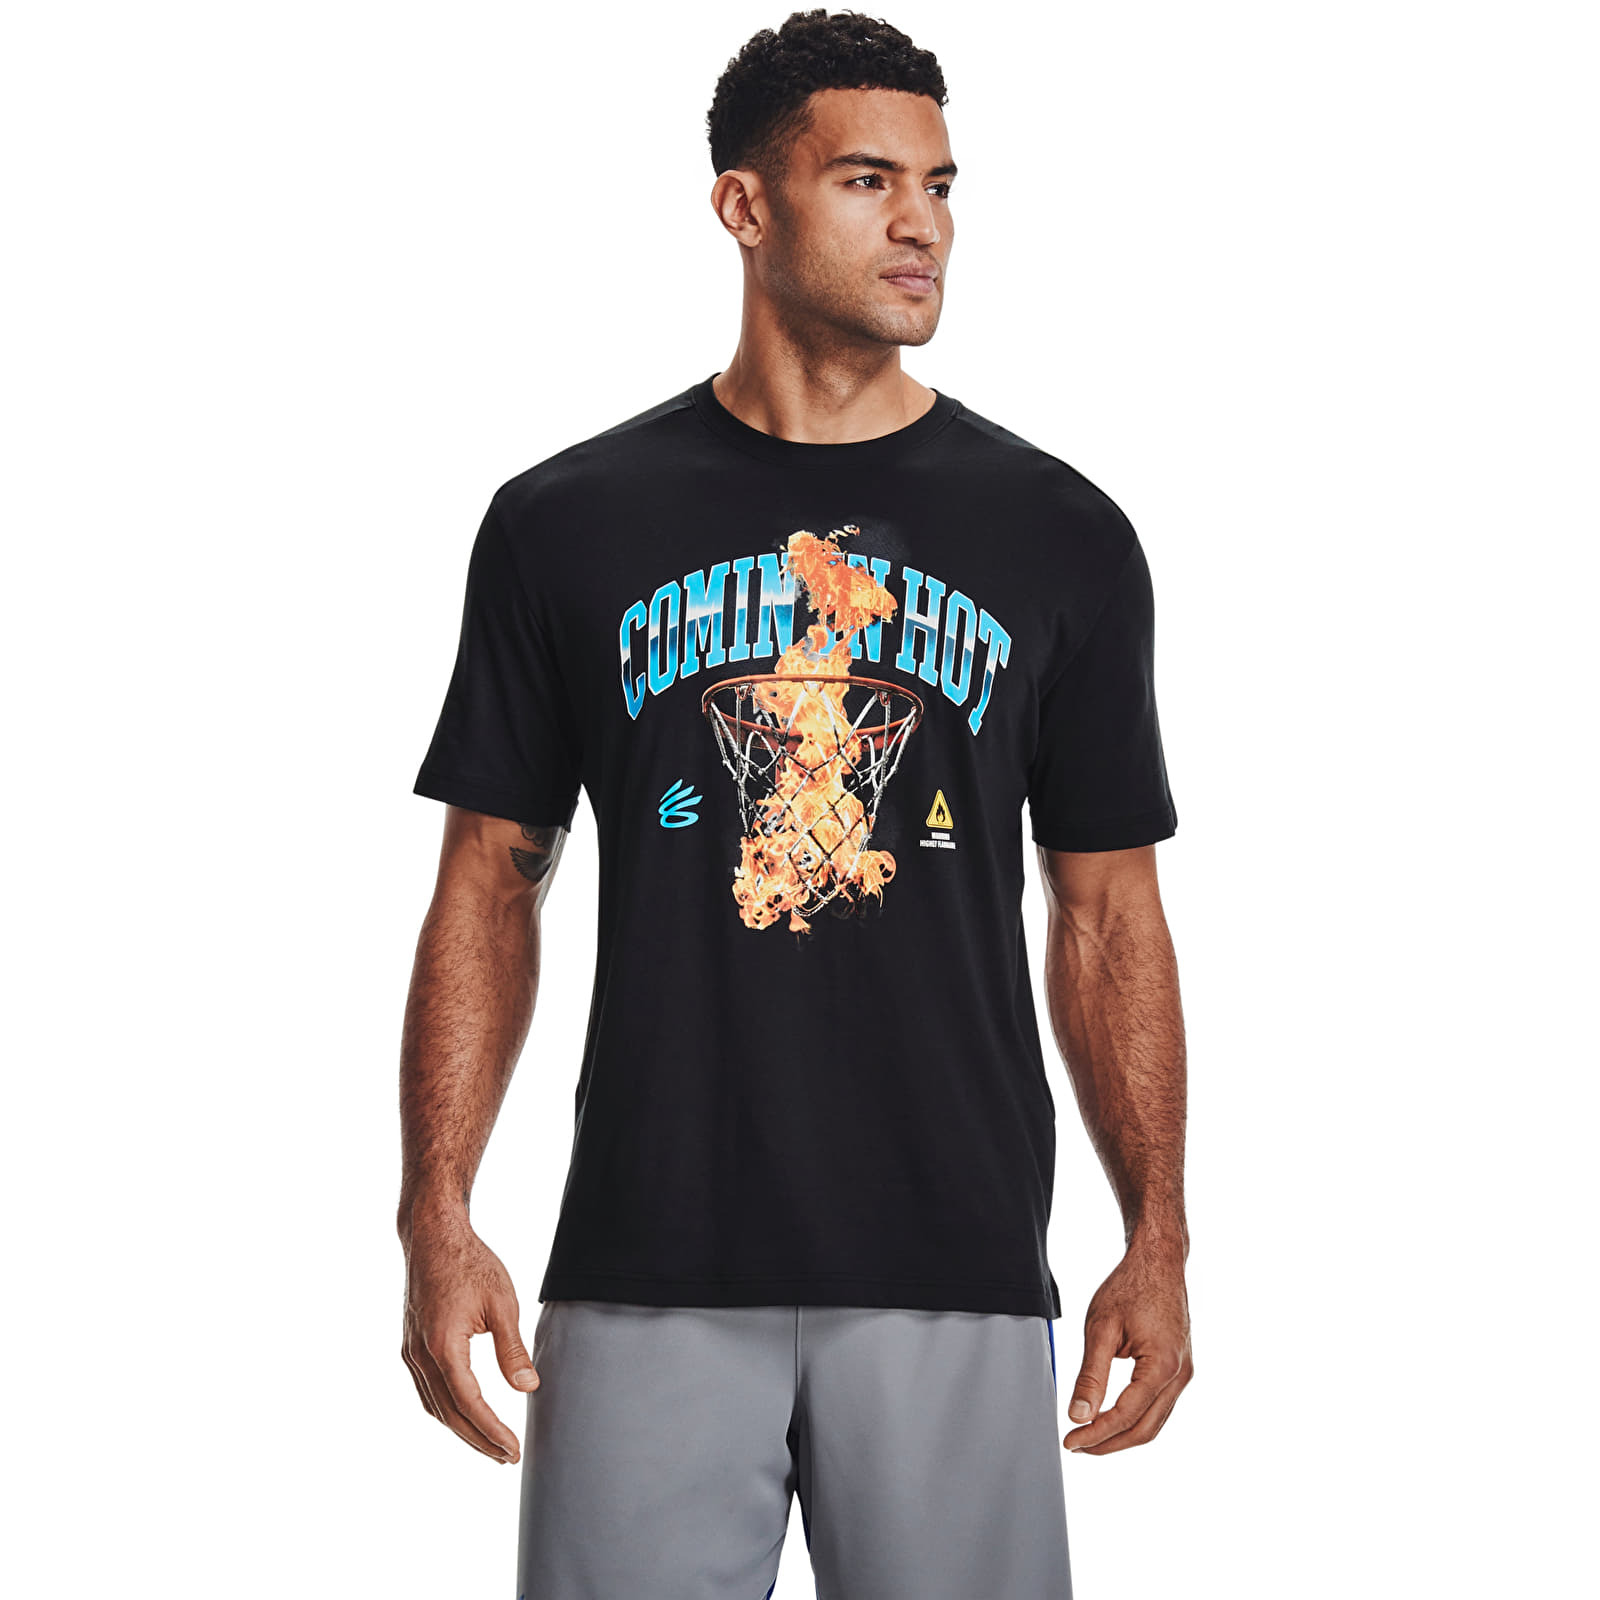 Under Armour Curry Coming In Hot Tee Black